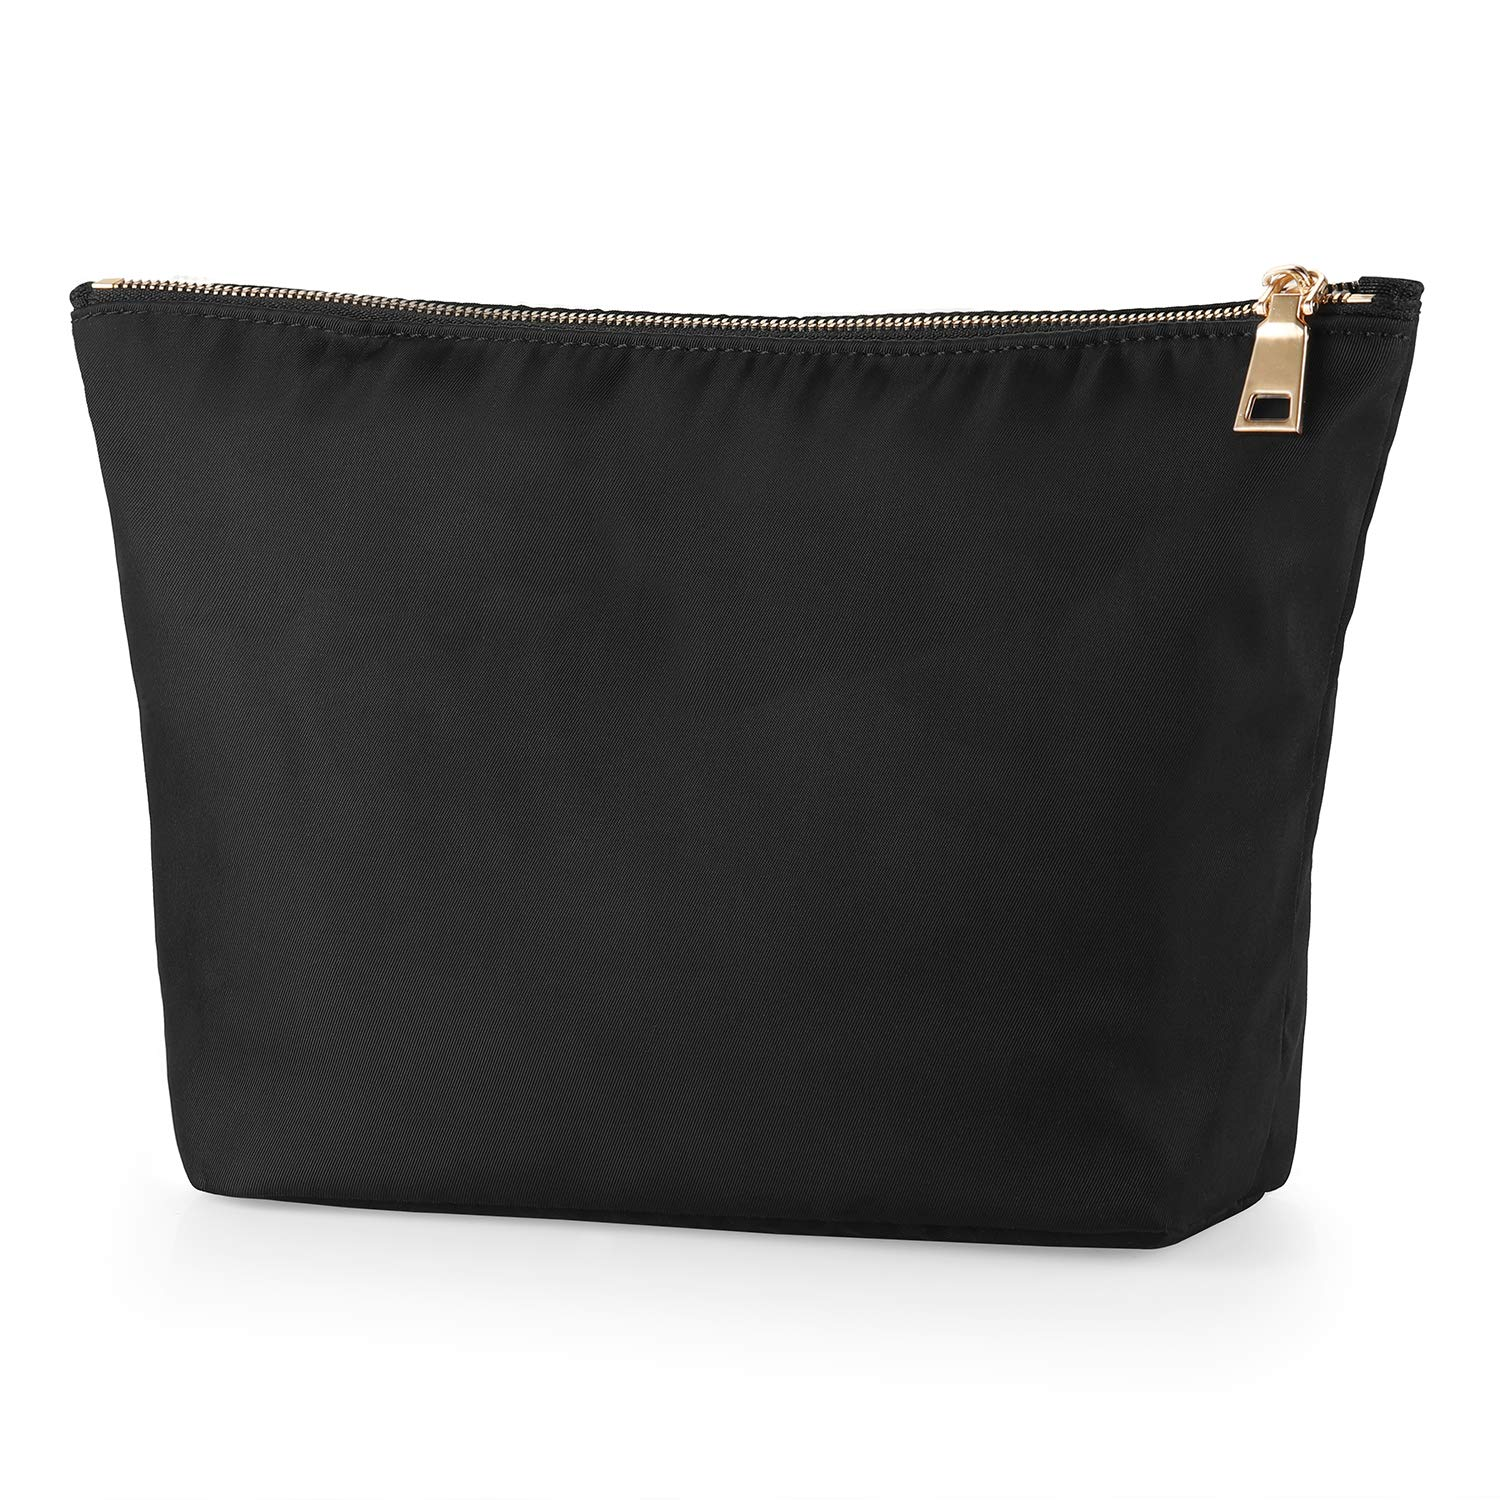 FOREGOER Nylon Large Makeup Bag Clutch Pouch Cosmetic Toiletry Bag for Womens